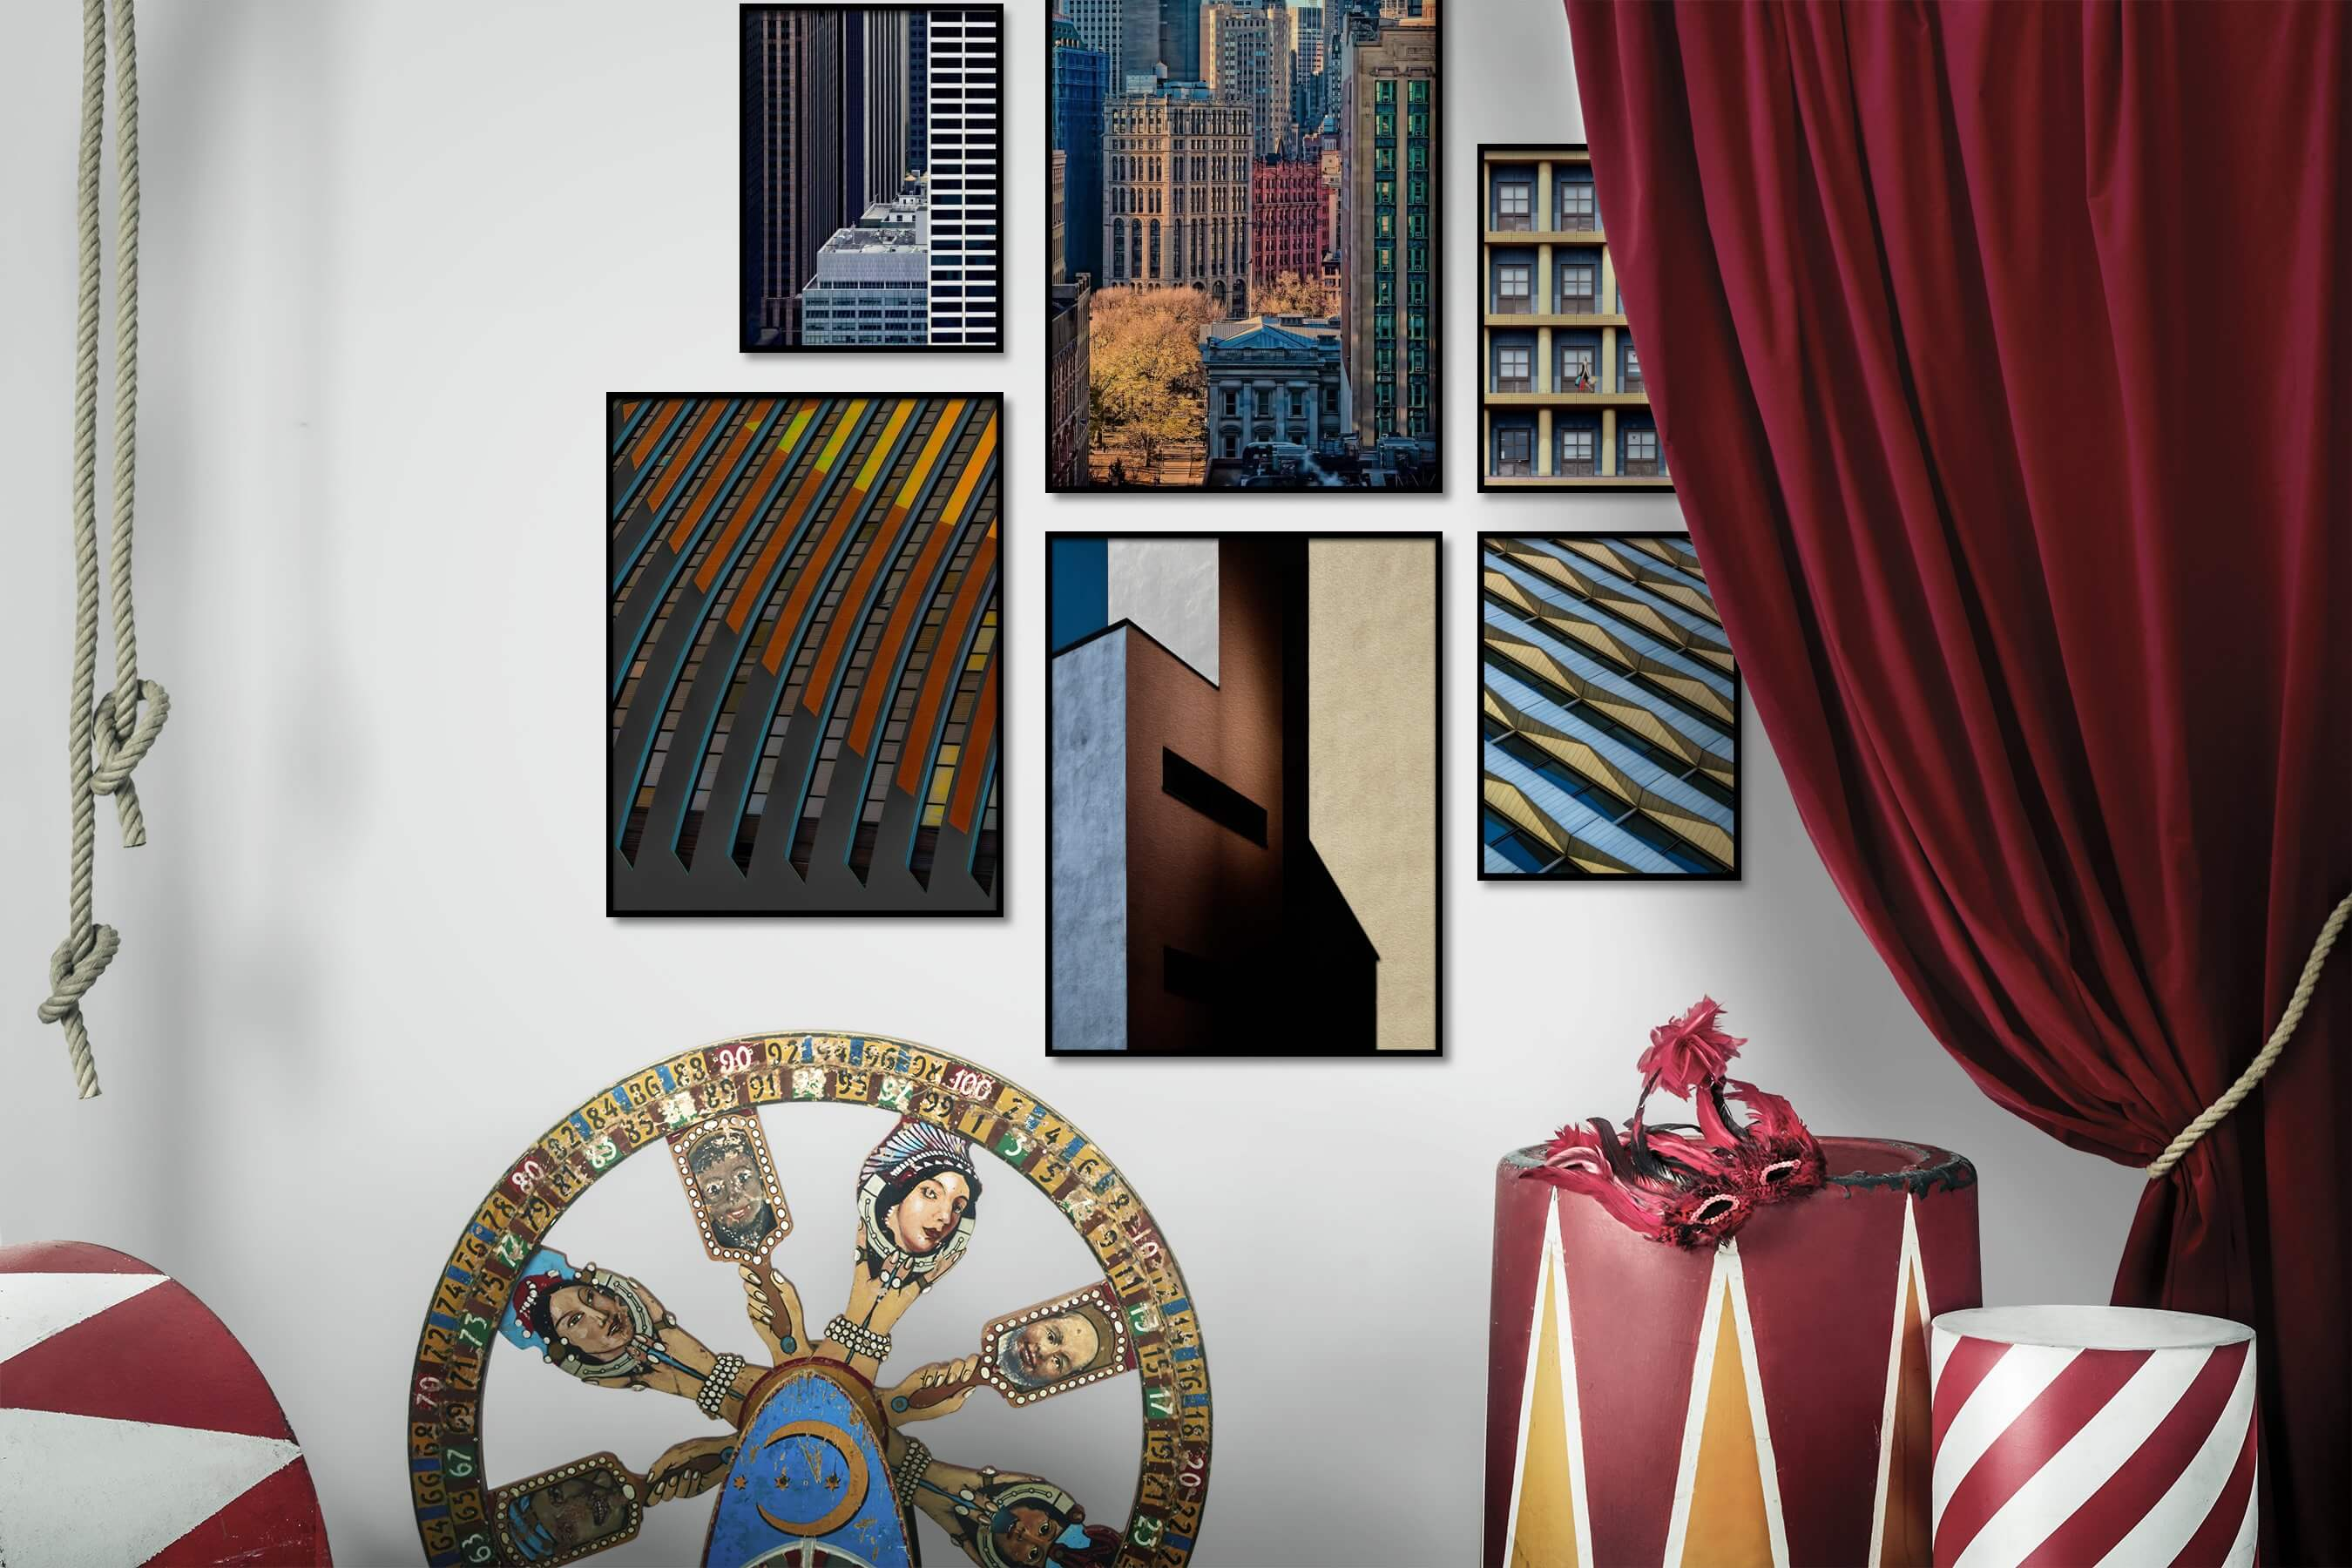 Gallery wall idea with six framed pictures arranged on a wall depicting For the Moderate, City Life, Americana, and For the Maximalist